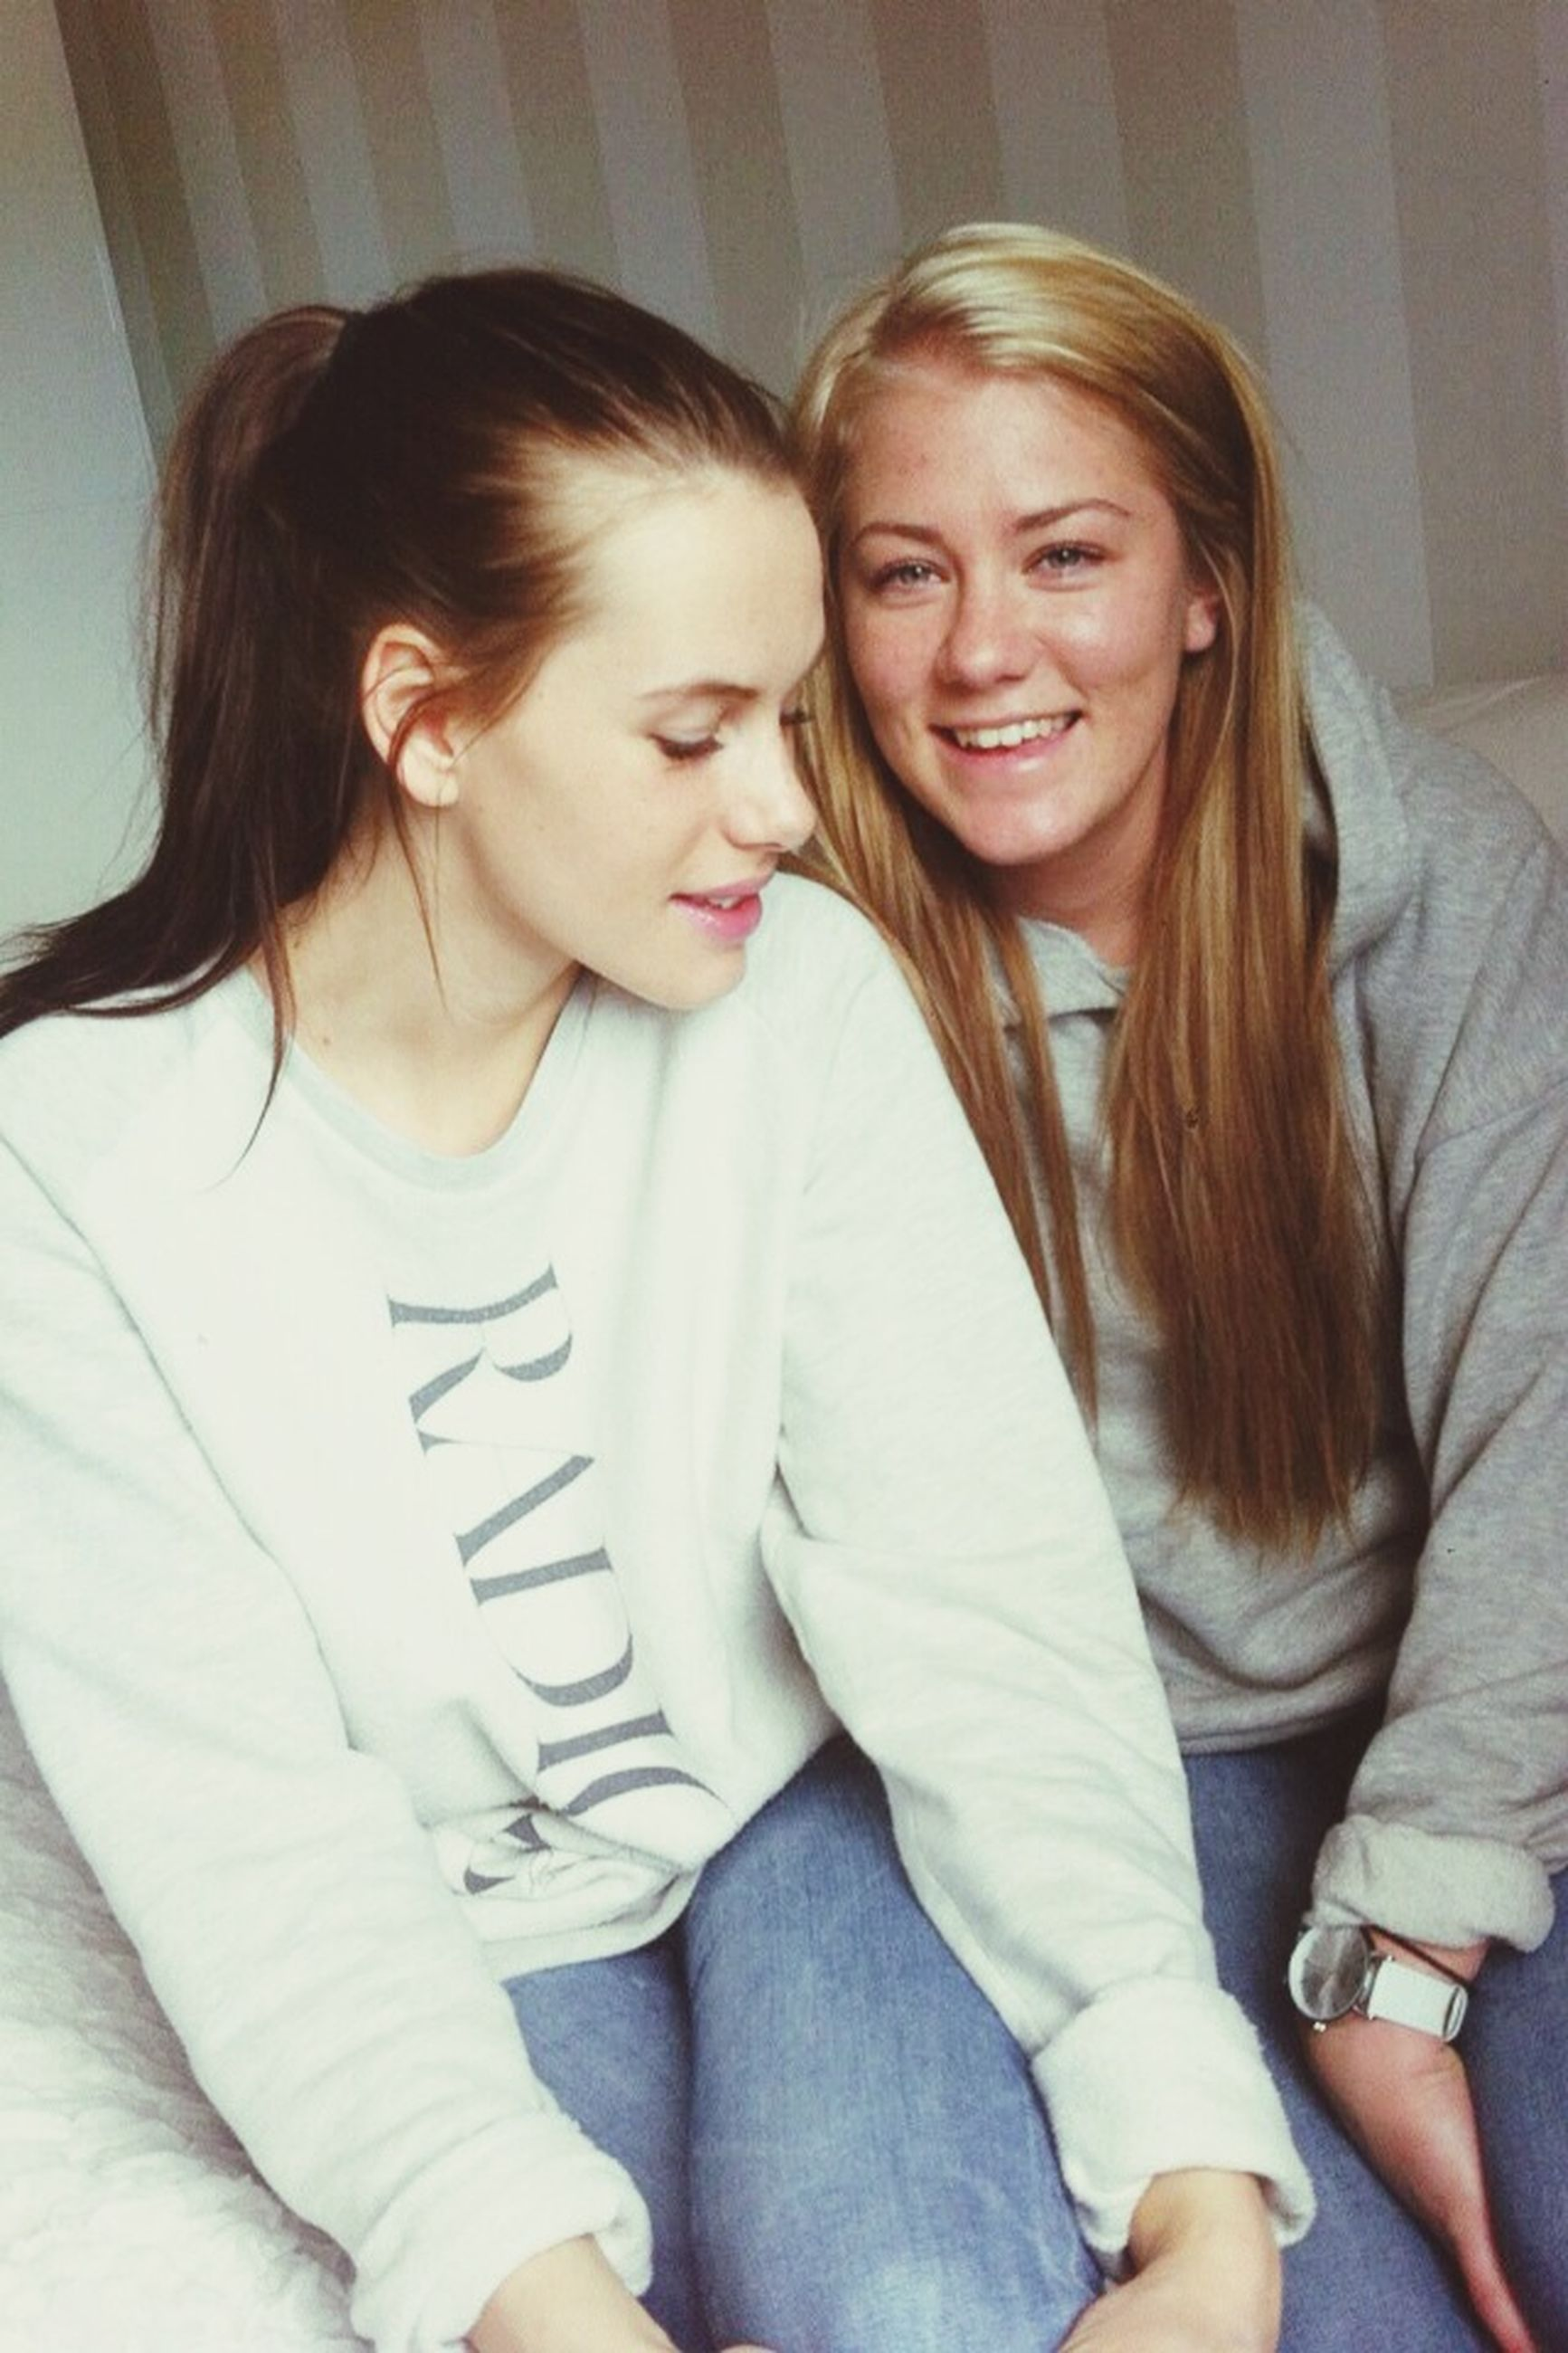 person, bonding, togetherness, lifestyles, young adult, portrait, love, smiling, casual clothing, happiness, front view, leisure activity, looking at camera, young women, indoors, three quarter length, family